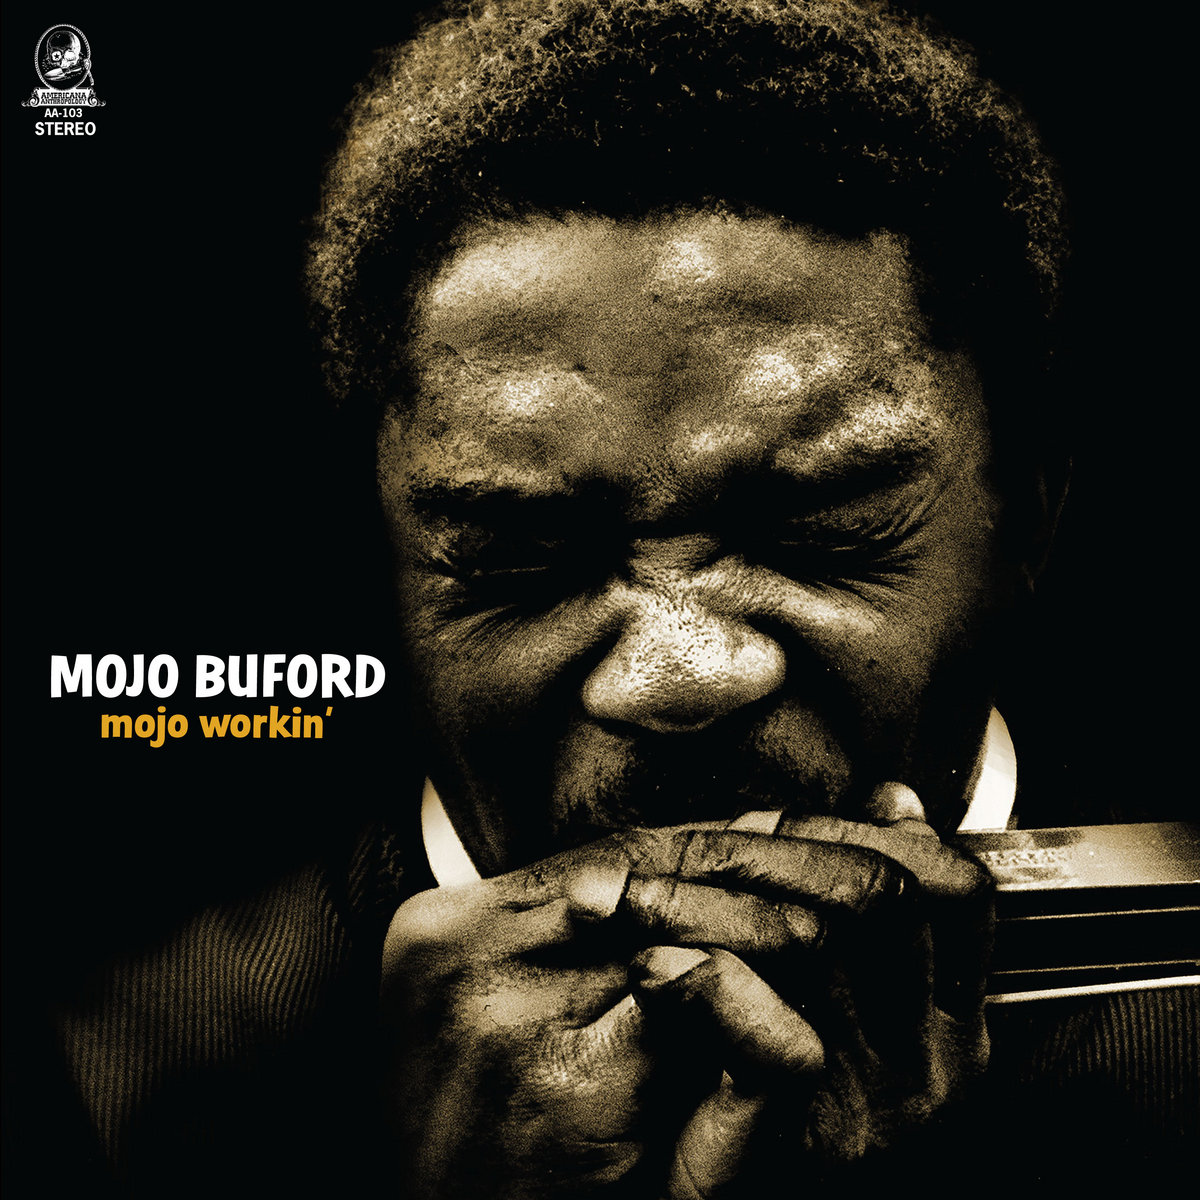 Mojo Buford Mojo Workin